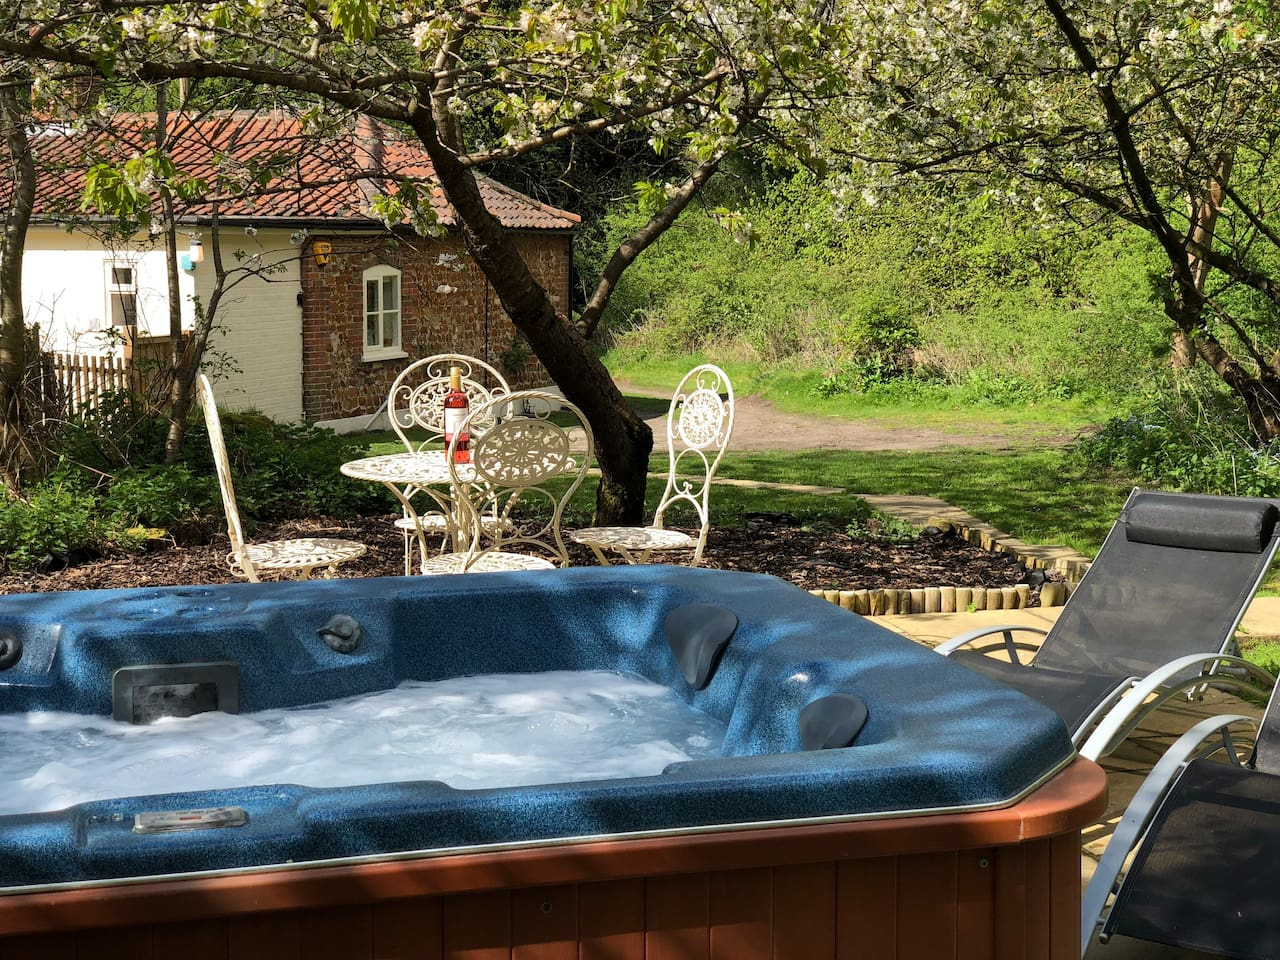 Stargaze the night away in your exclusive private hot tub set in your private grounds surrounded by woodland or unwind with a glass of wine during the day.